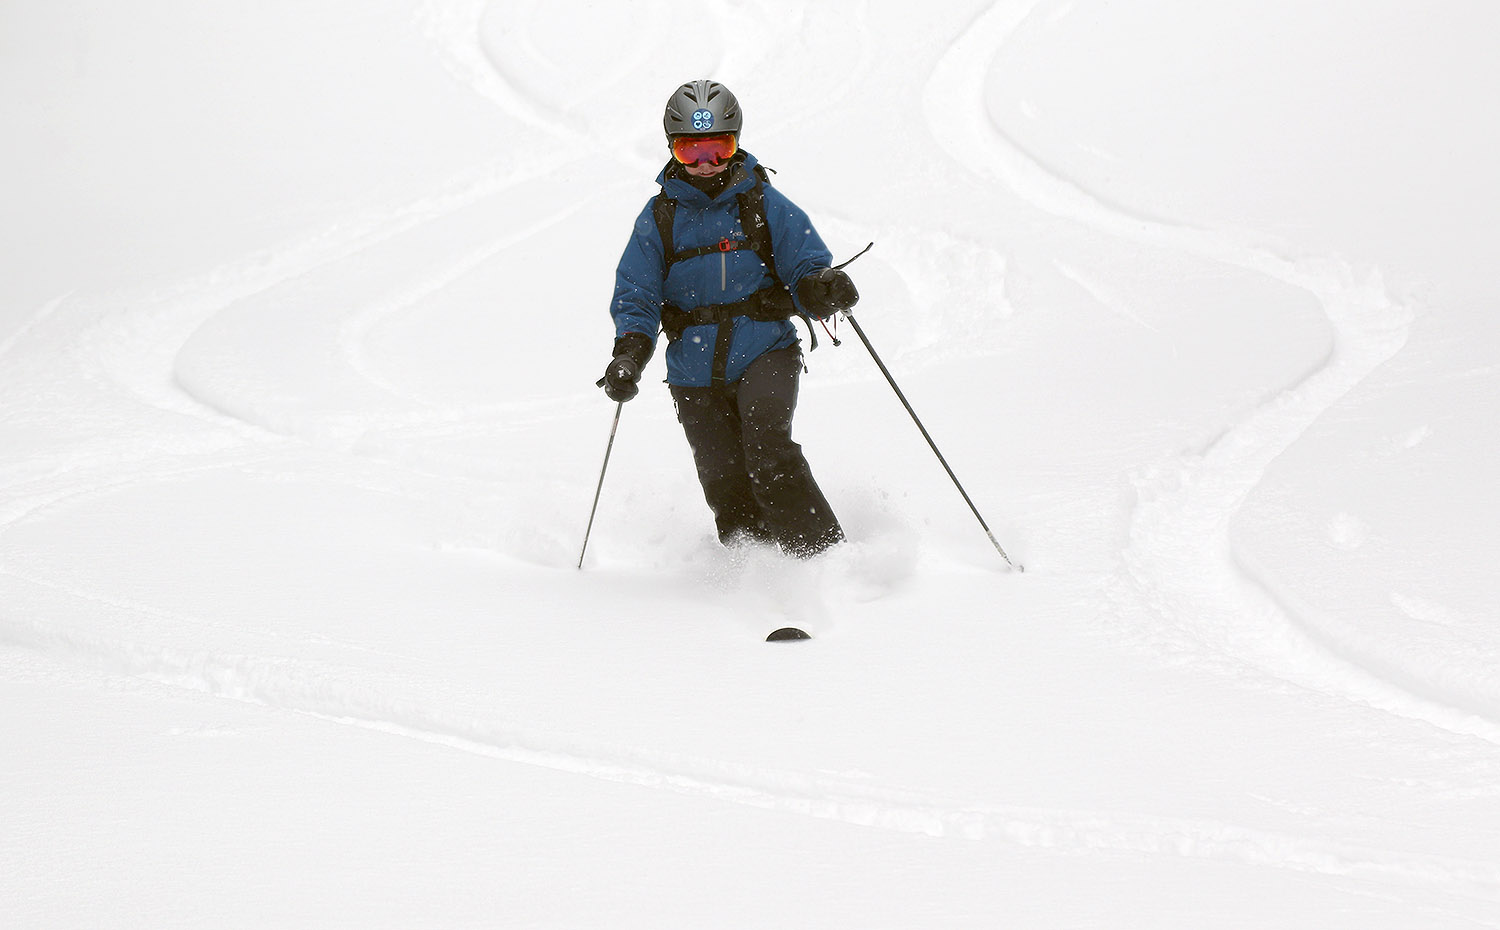 An image of Erica Telemark skiing on powder during an April snowstorm at Bolton Valley Ski Resort in Vermont